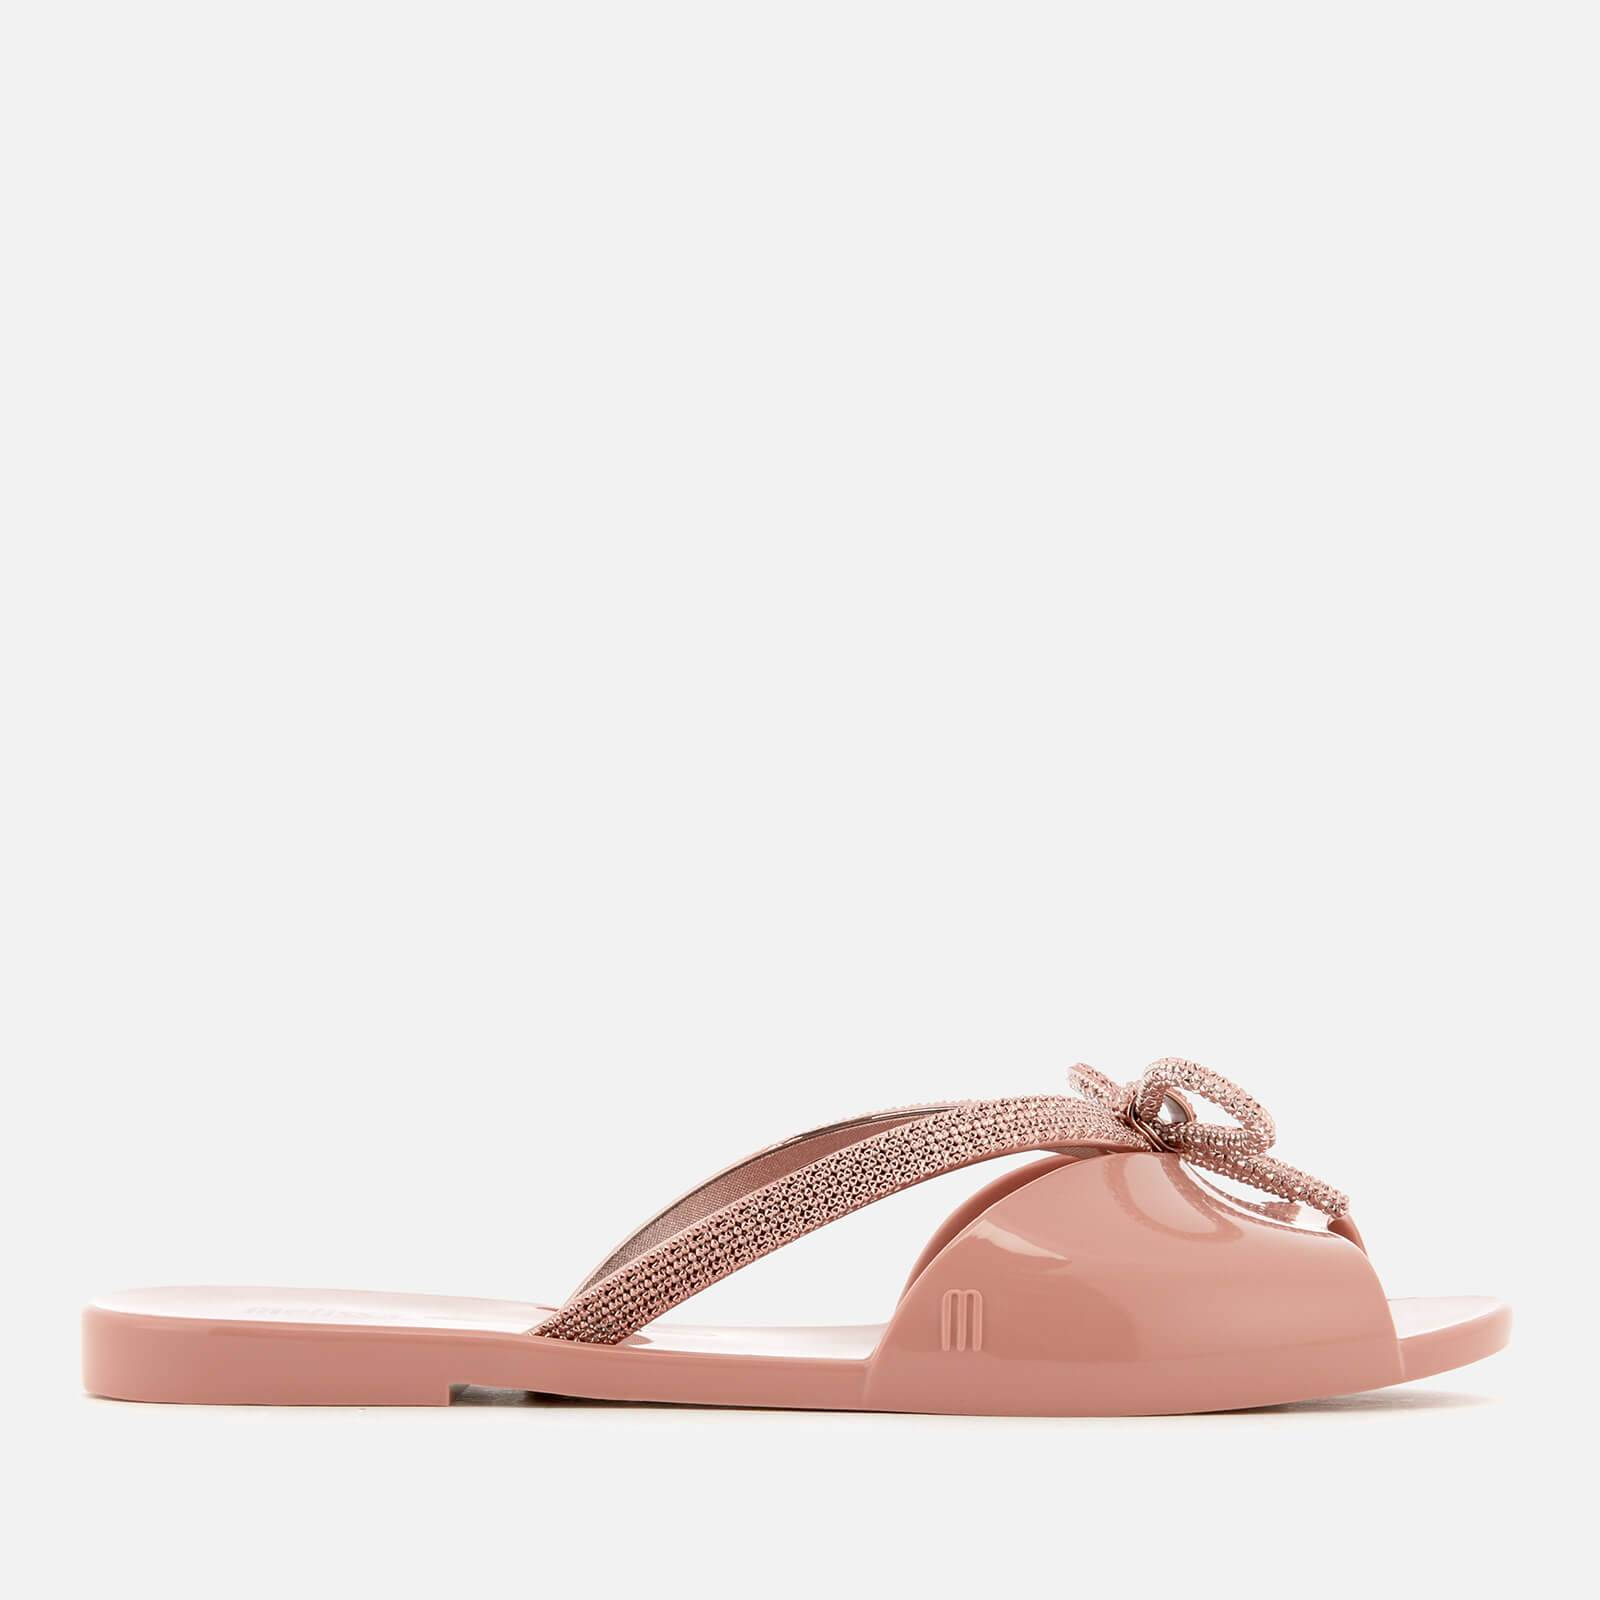 Melissa Women's Ela Glam Sandals - Blush - UK 7 - Pink